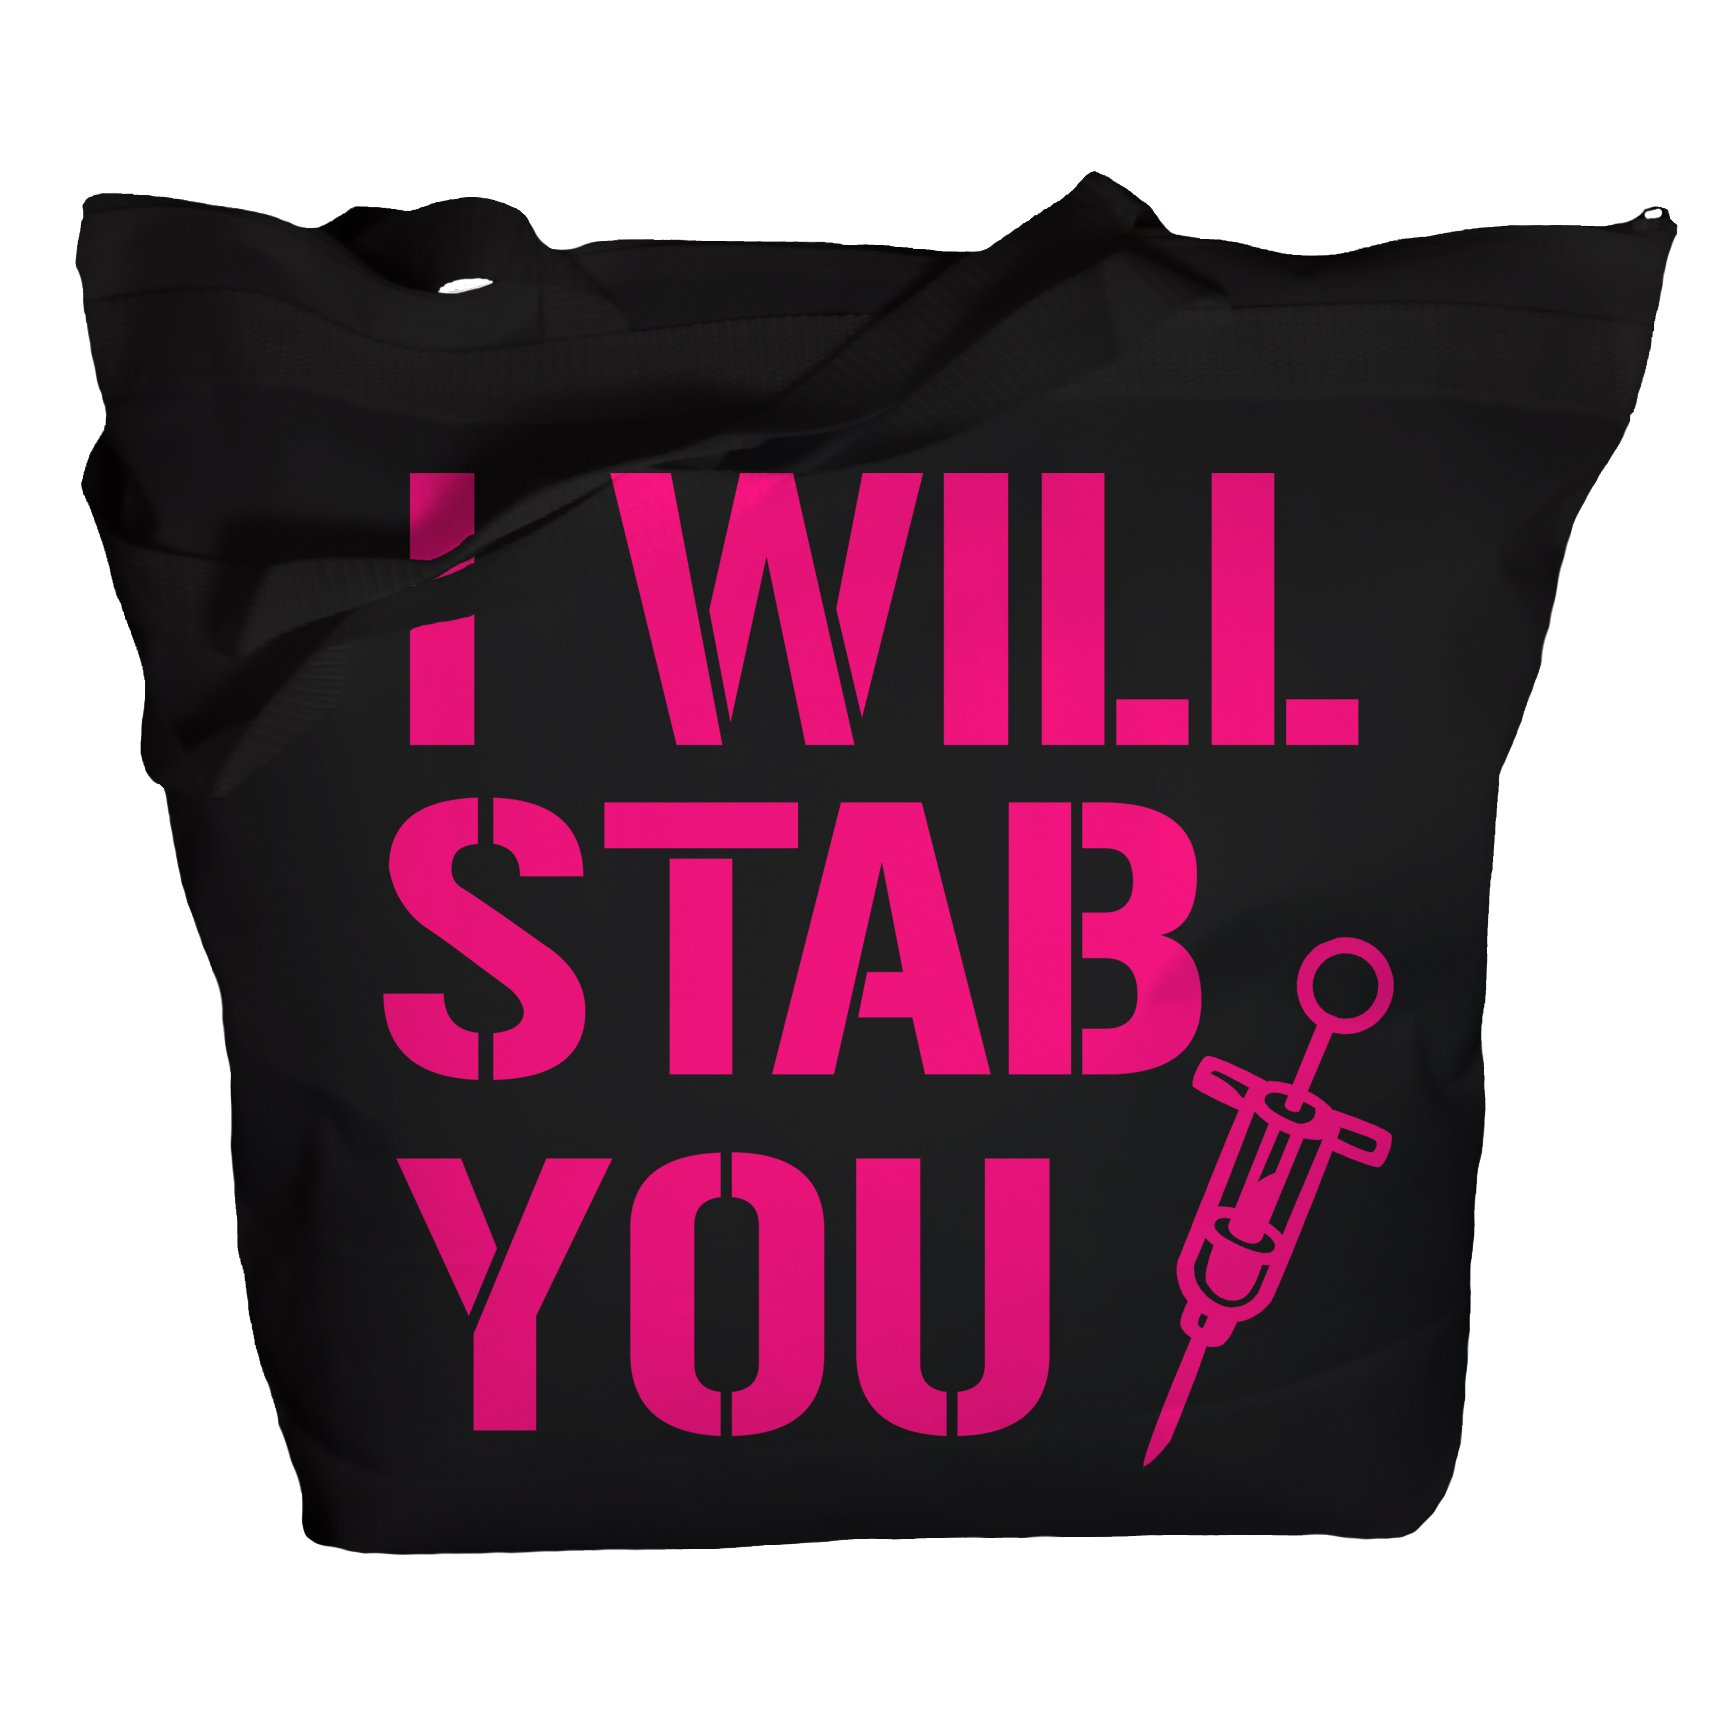 Shirts By Sarah Tote Bag Funny Nursing Bags I Will Stab You Nurse Totes (One Size, Black/Bright Pink)